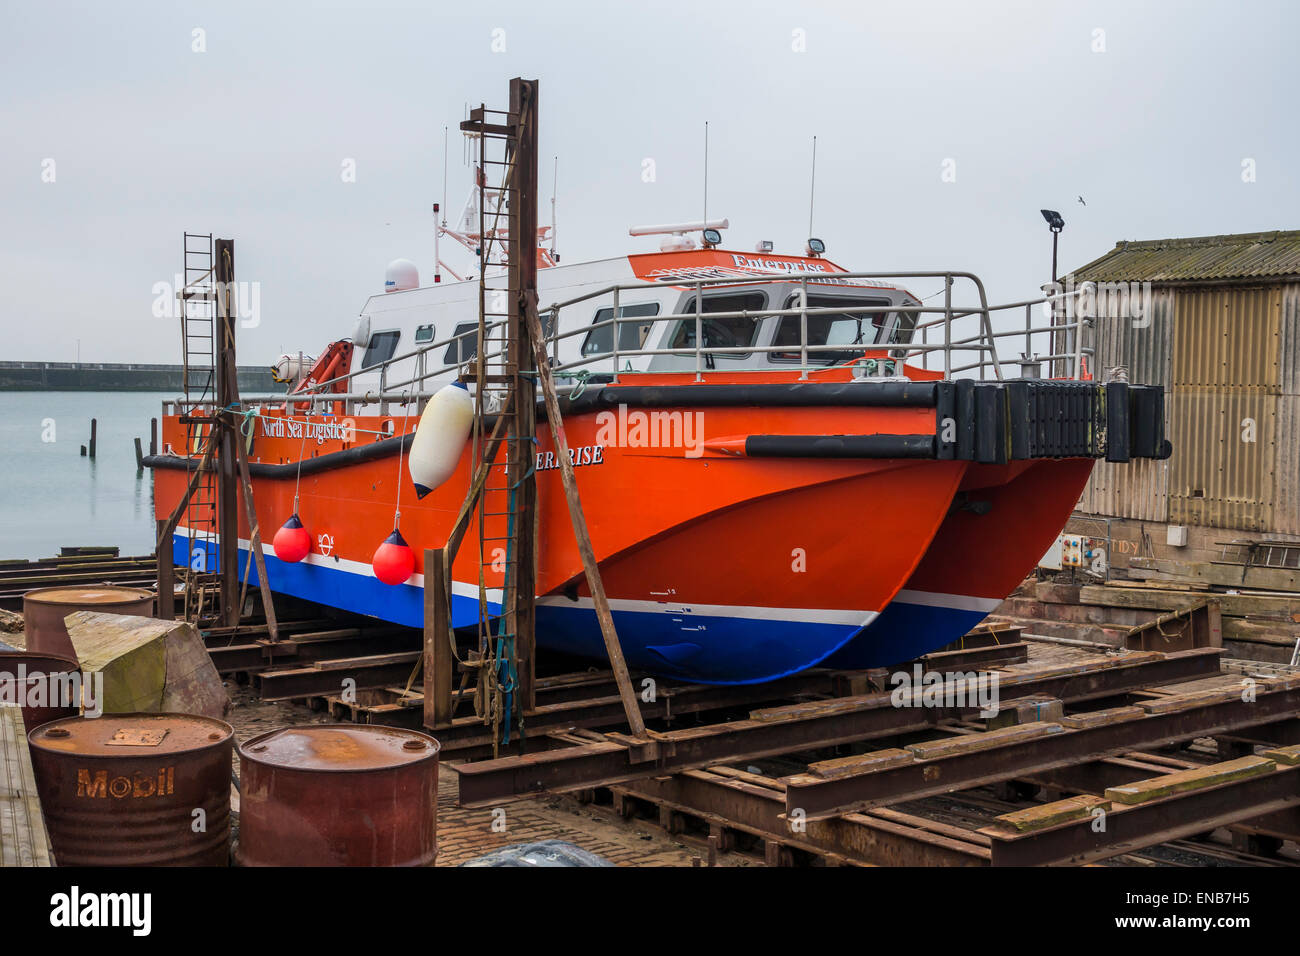 Boat in slips Enterprise North Sea Logistics Ramsgate Harbour Kent - Stock Image